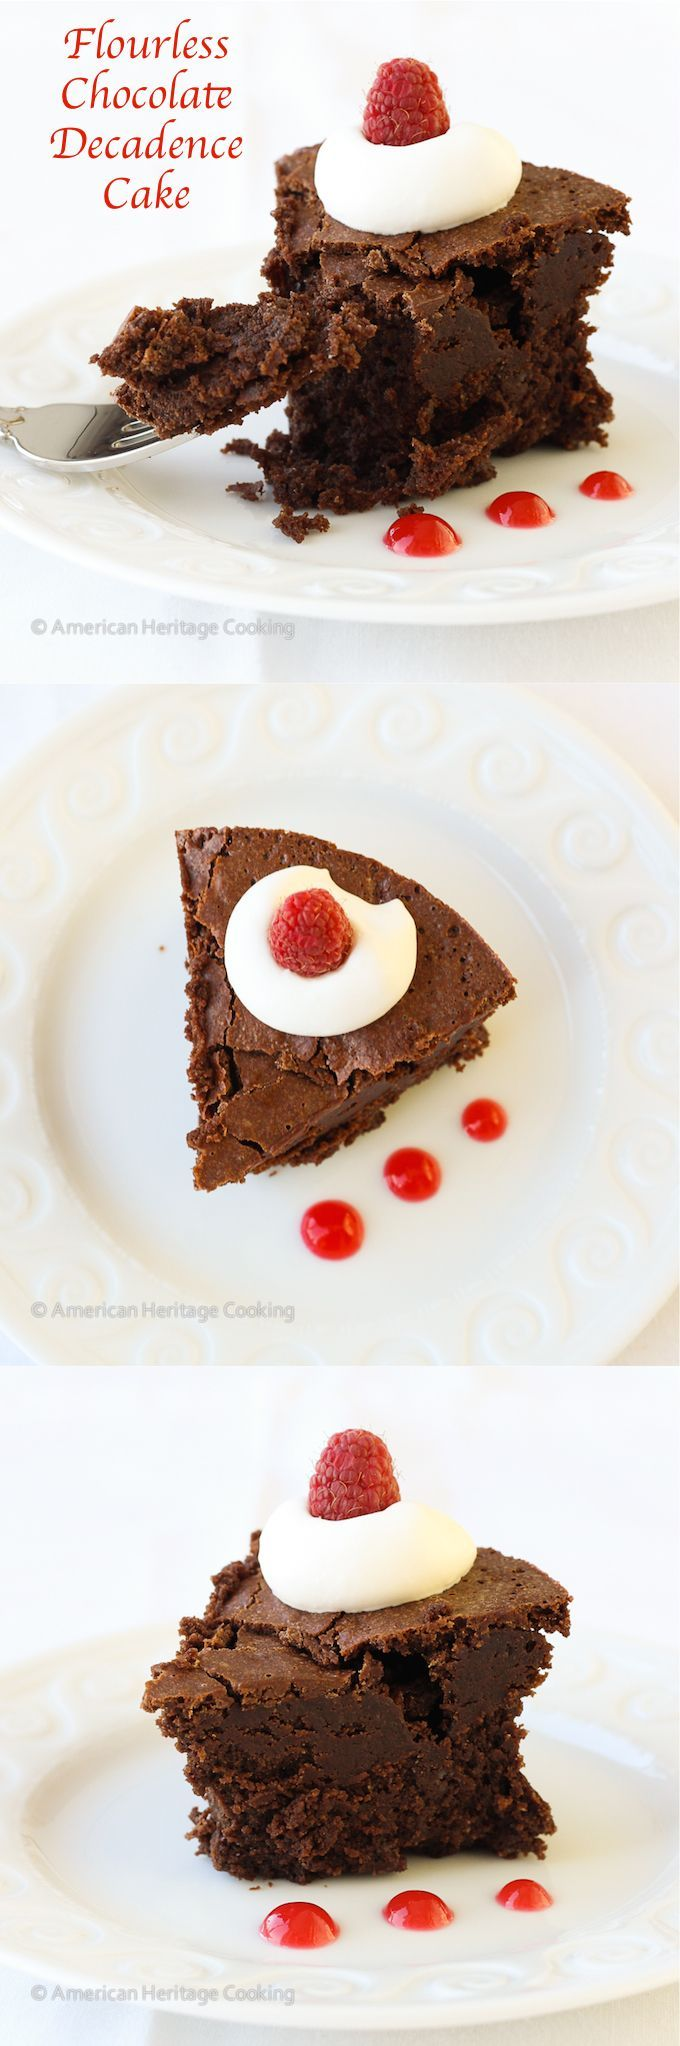 Flourless Chocolate Decadence Cake |  This is the best flourless chocolate cake I have ever tried! Dense, intensely chocolatey! ~American Heritage Cooking  #flourless #glutenfree #cake #dessert #chocolate #valentinesday #recipe #baking